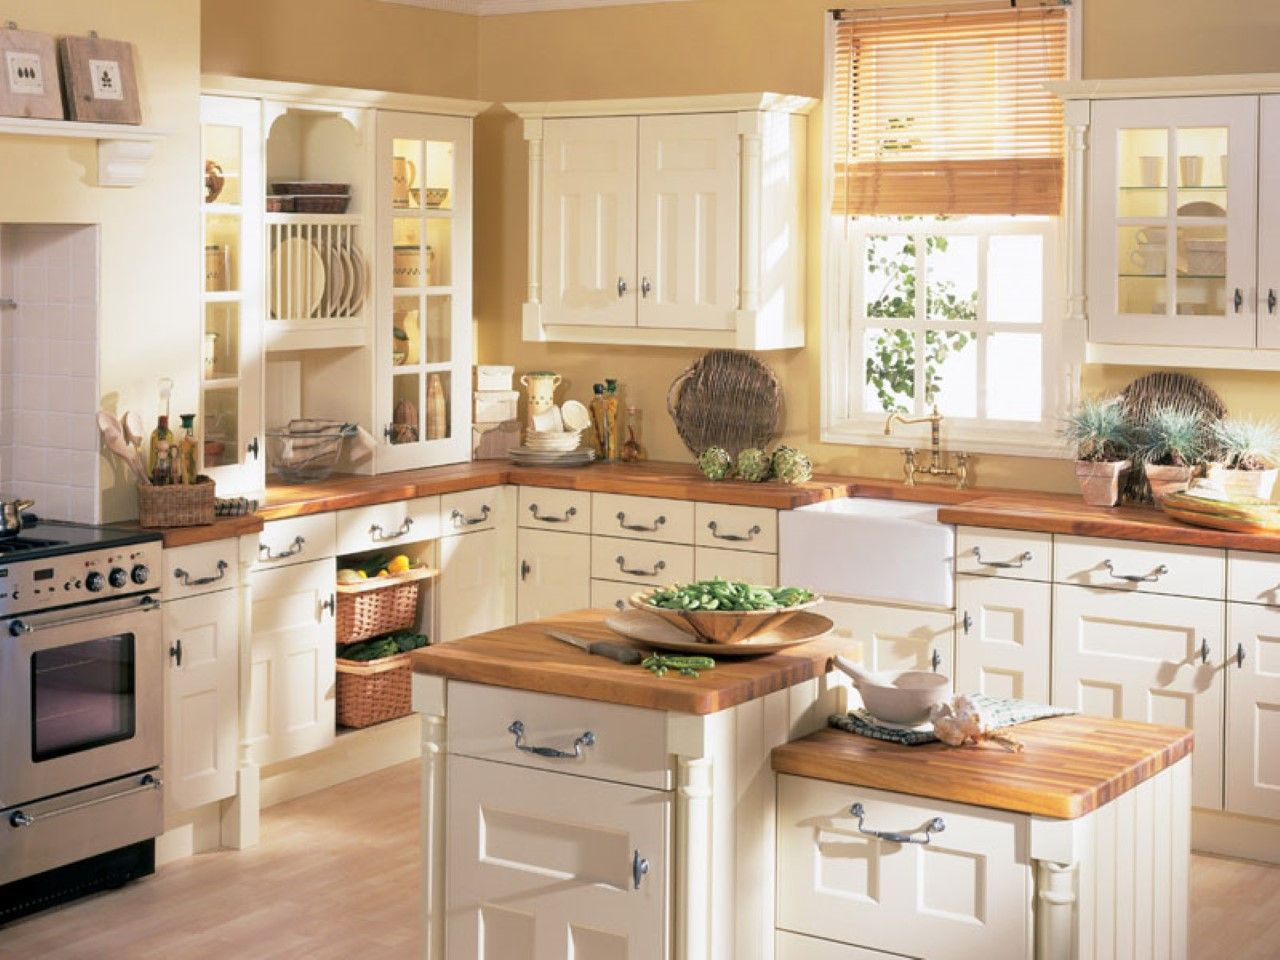 Küchenmöbel Bei Roller Own One Of These Traditional Kitchen Designs Photo Gallery As Your Pride For City Area: Bamboo Roller Window Blind Wi… | Küche Renovieren, Haus Küchen, Küchendesign